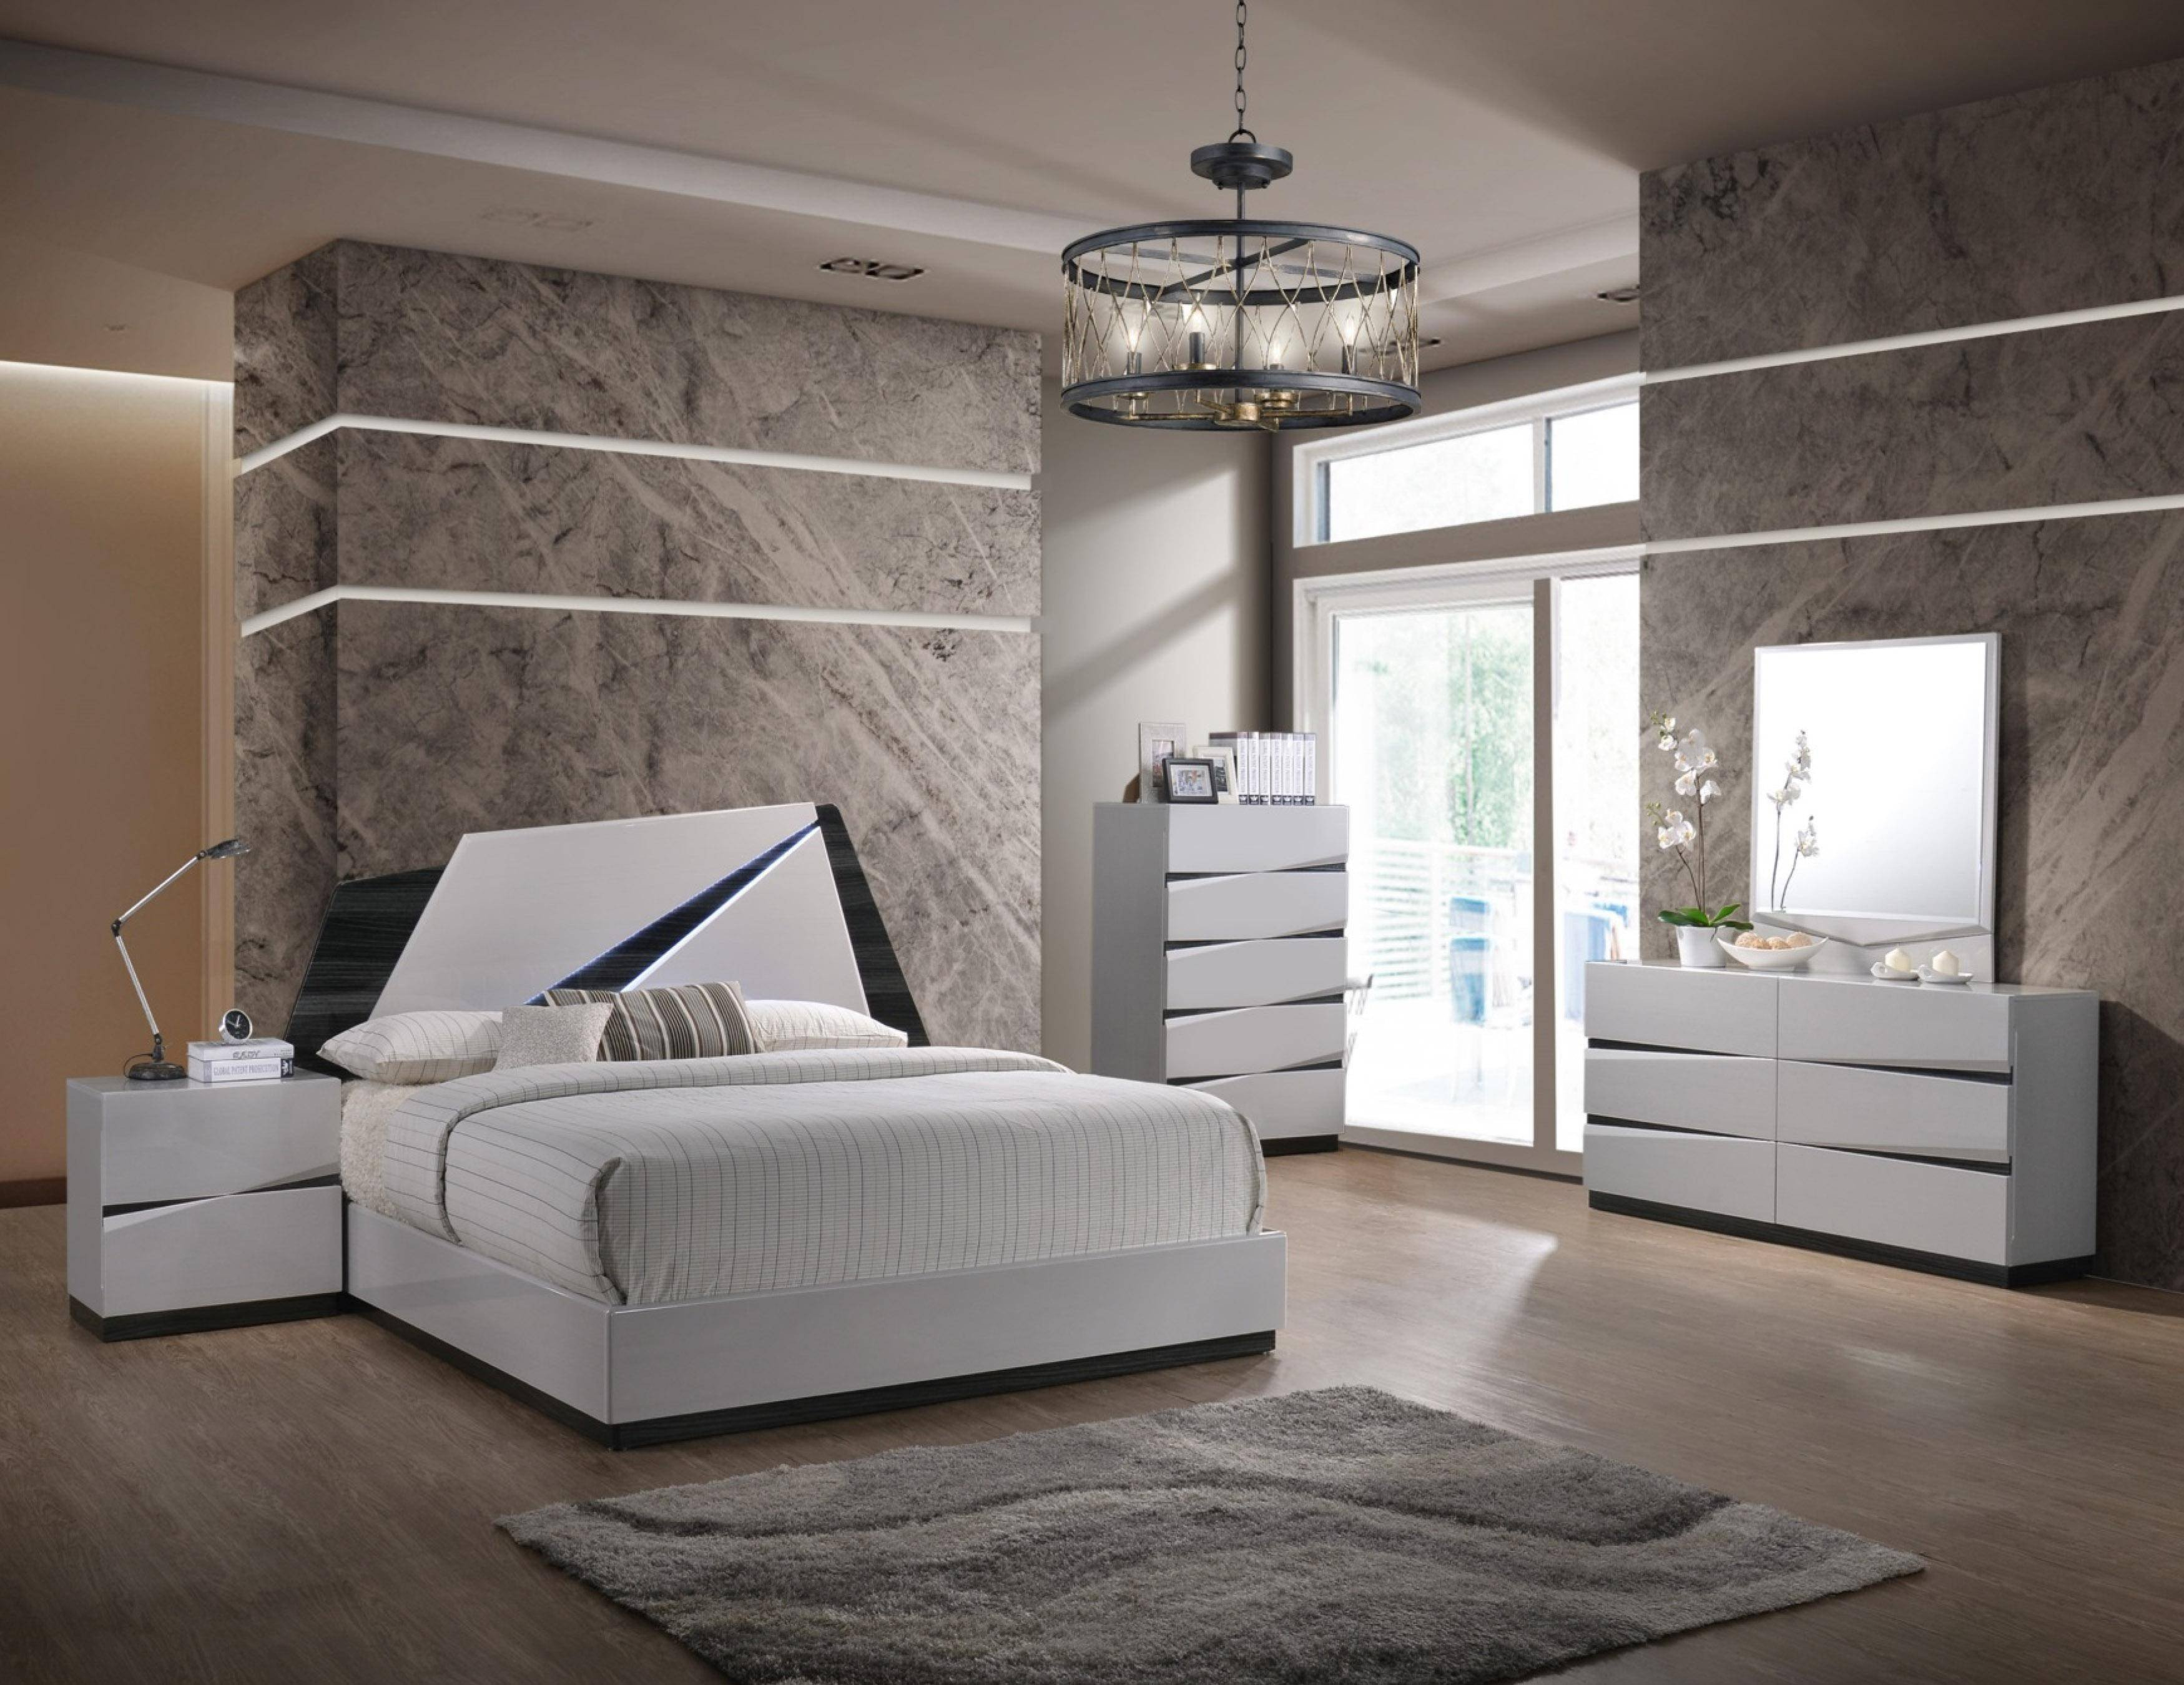 White Gloss Bedroom Furniture Luxury Global Furniture Scarlett Modern White Gloss Finish Queen